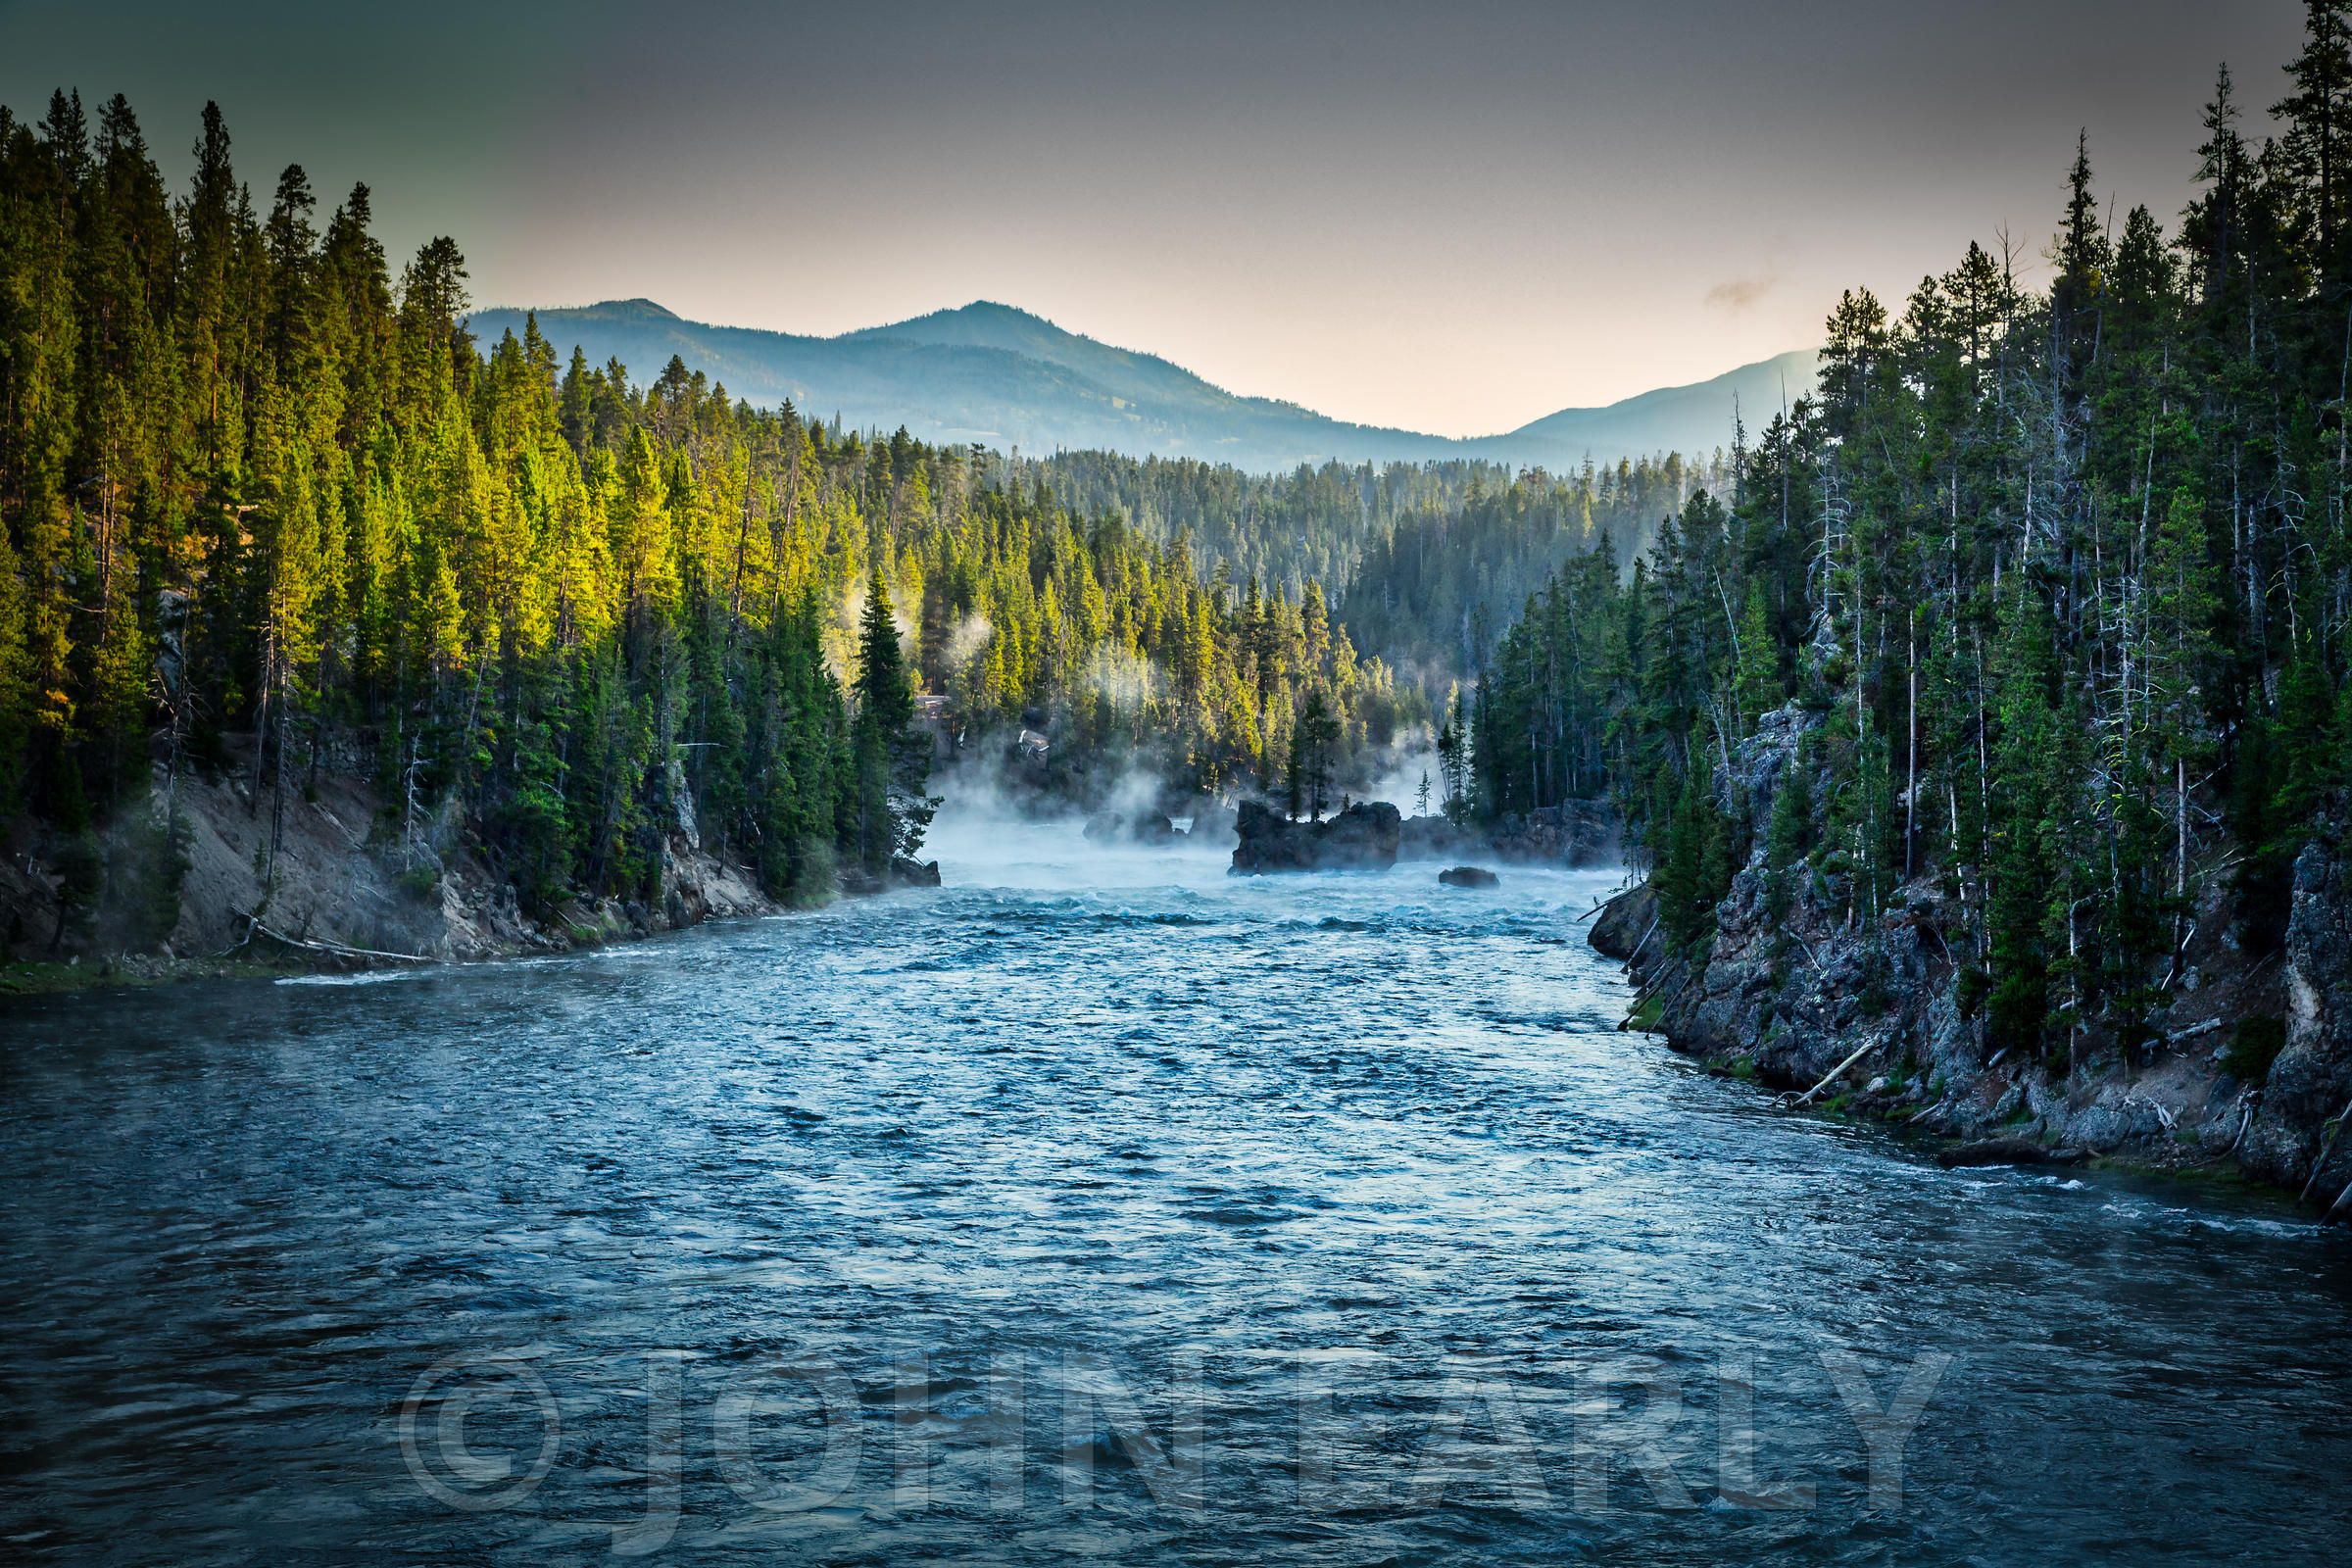 Yellowstone River near Upper Falls, Yellowstone National Park,